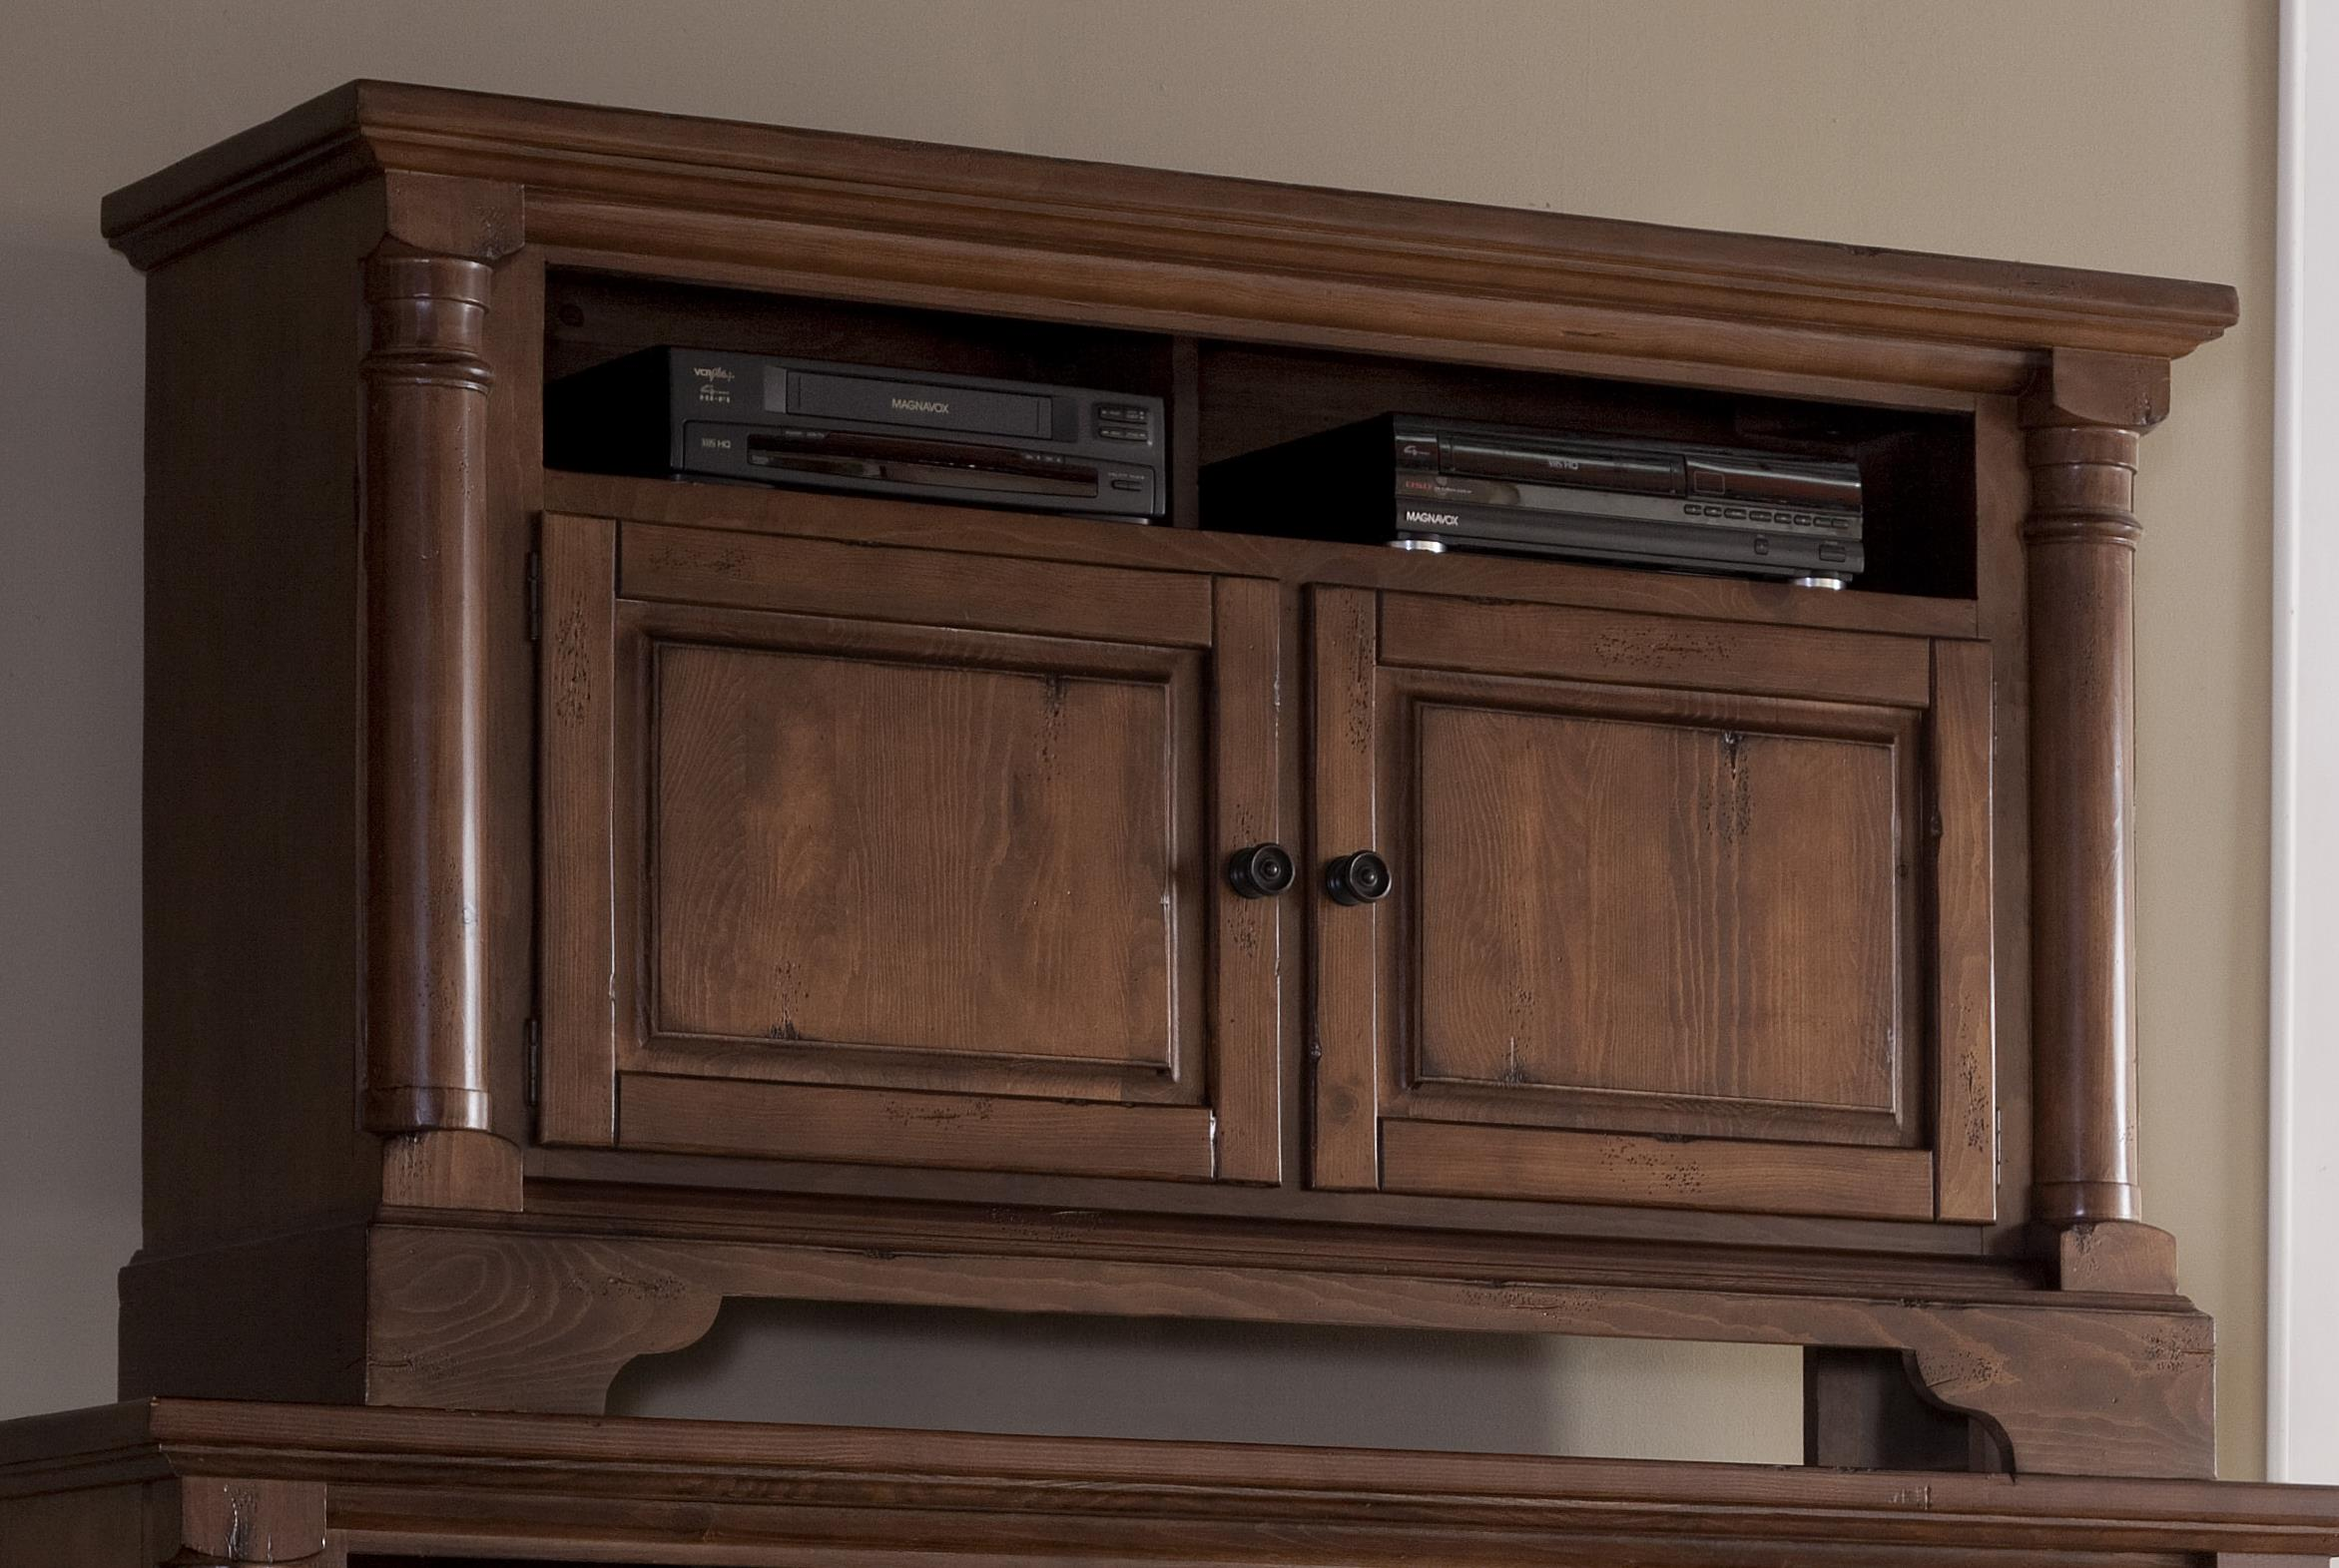 Progressive Furniture Gramercy Park 54 Inch Console - Item Number: P660E-54